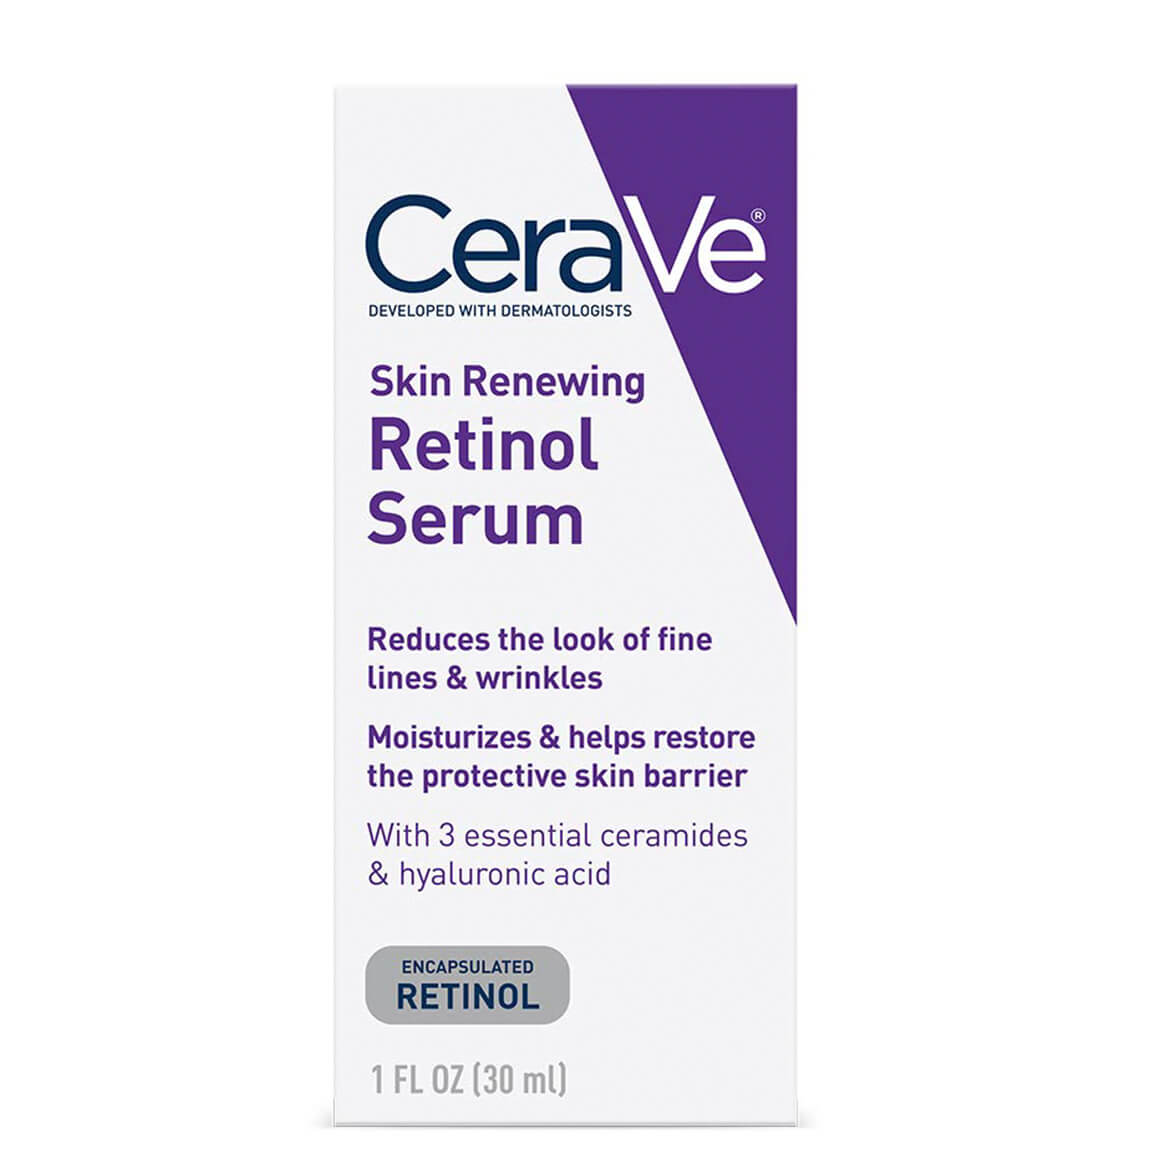 Skin Renewing Retinol Serum 30ml